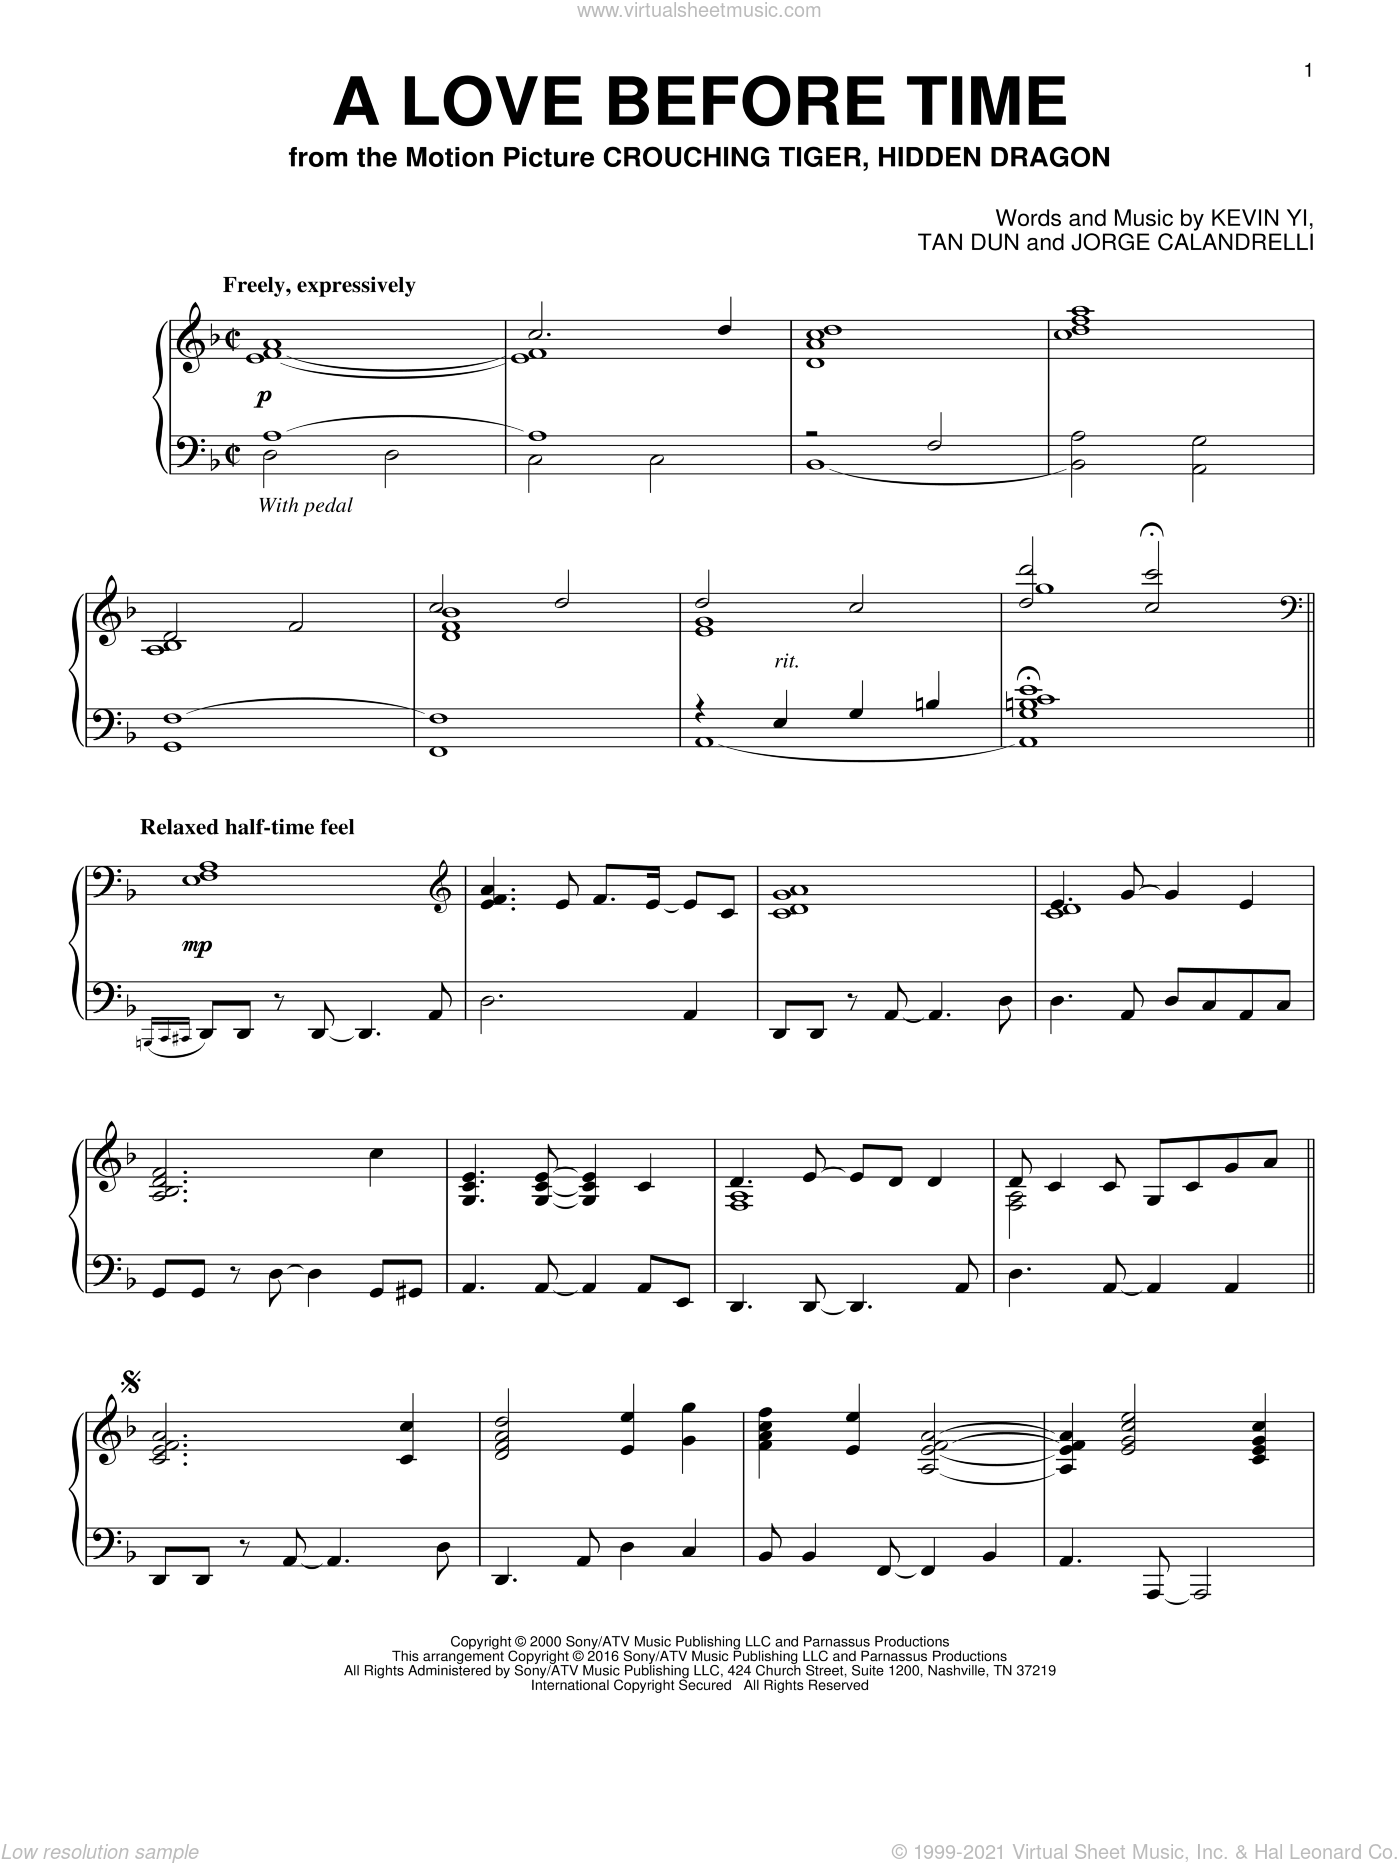 A Love Before Time sheet music for piano solo by Kevin Yi